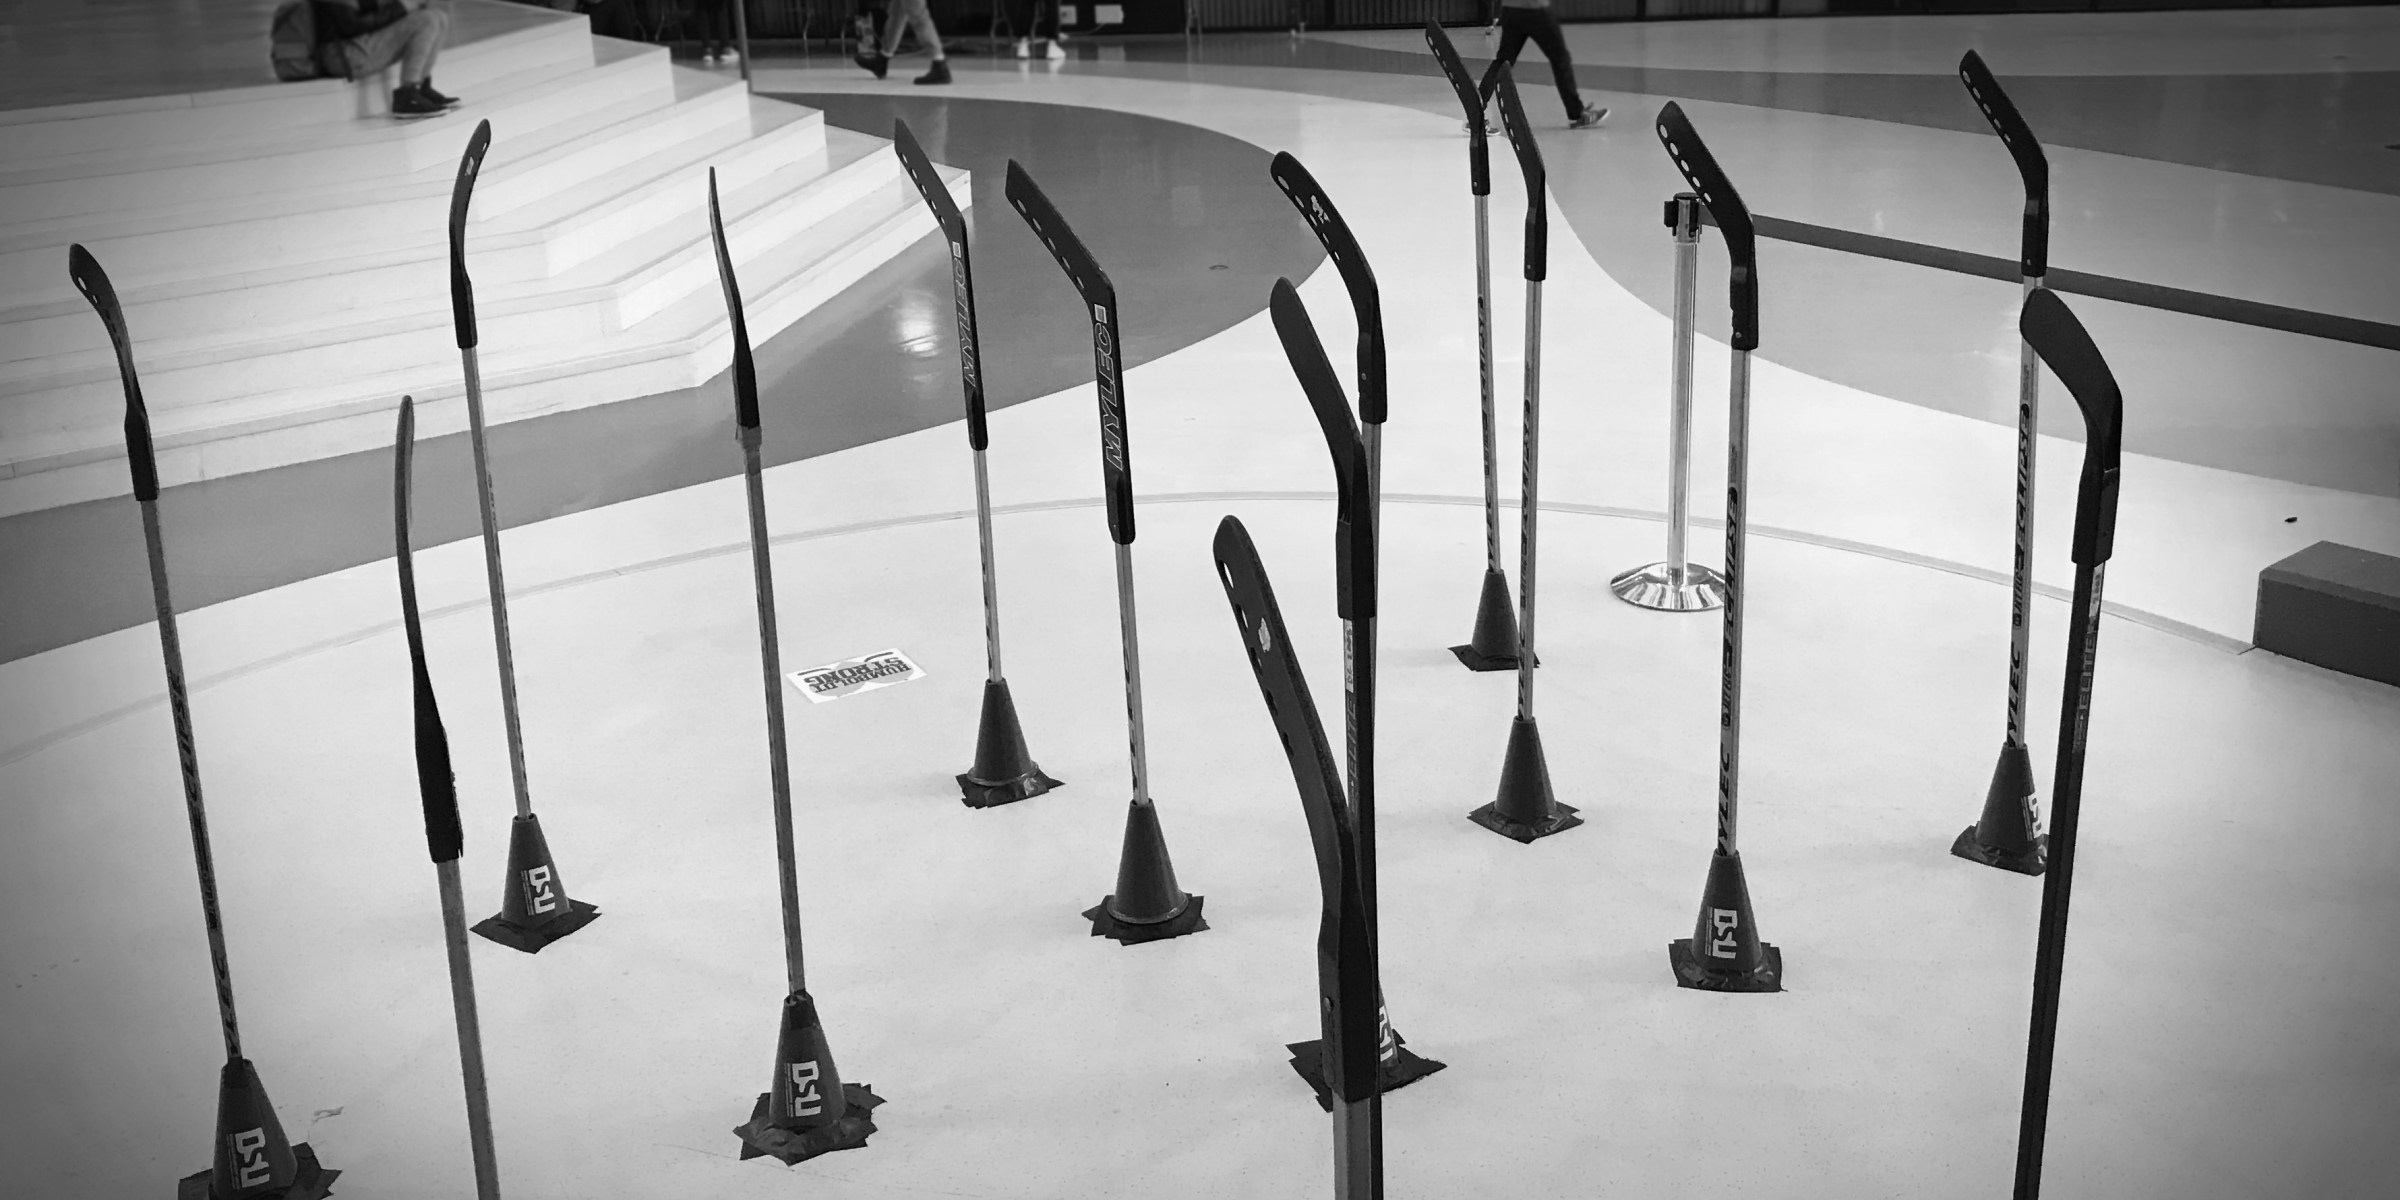 16 Hockey sticks standing upright in the concourse in tribute to Humboldt